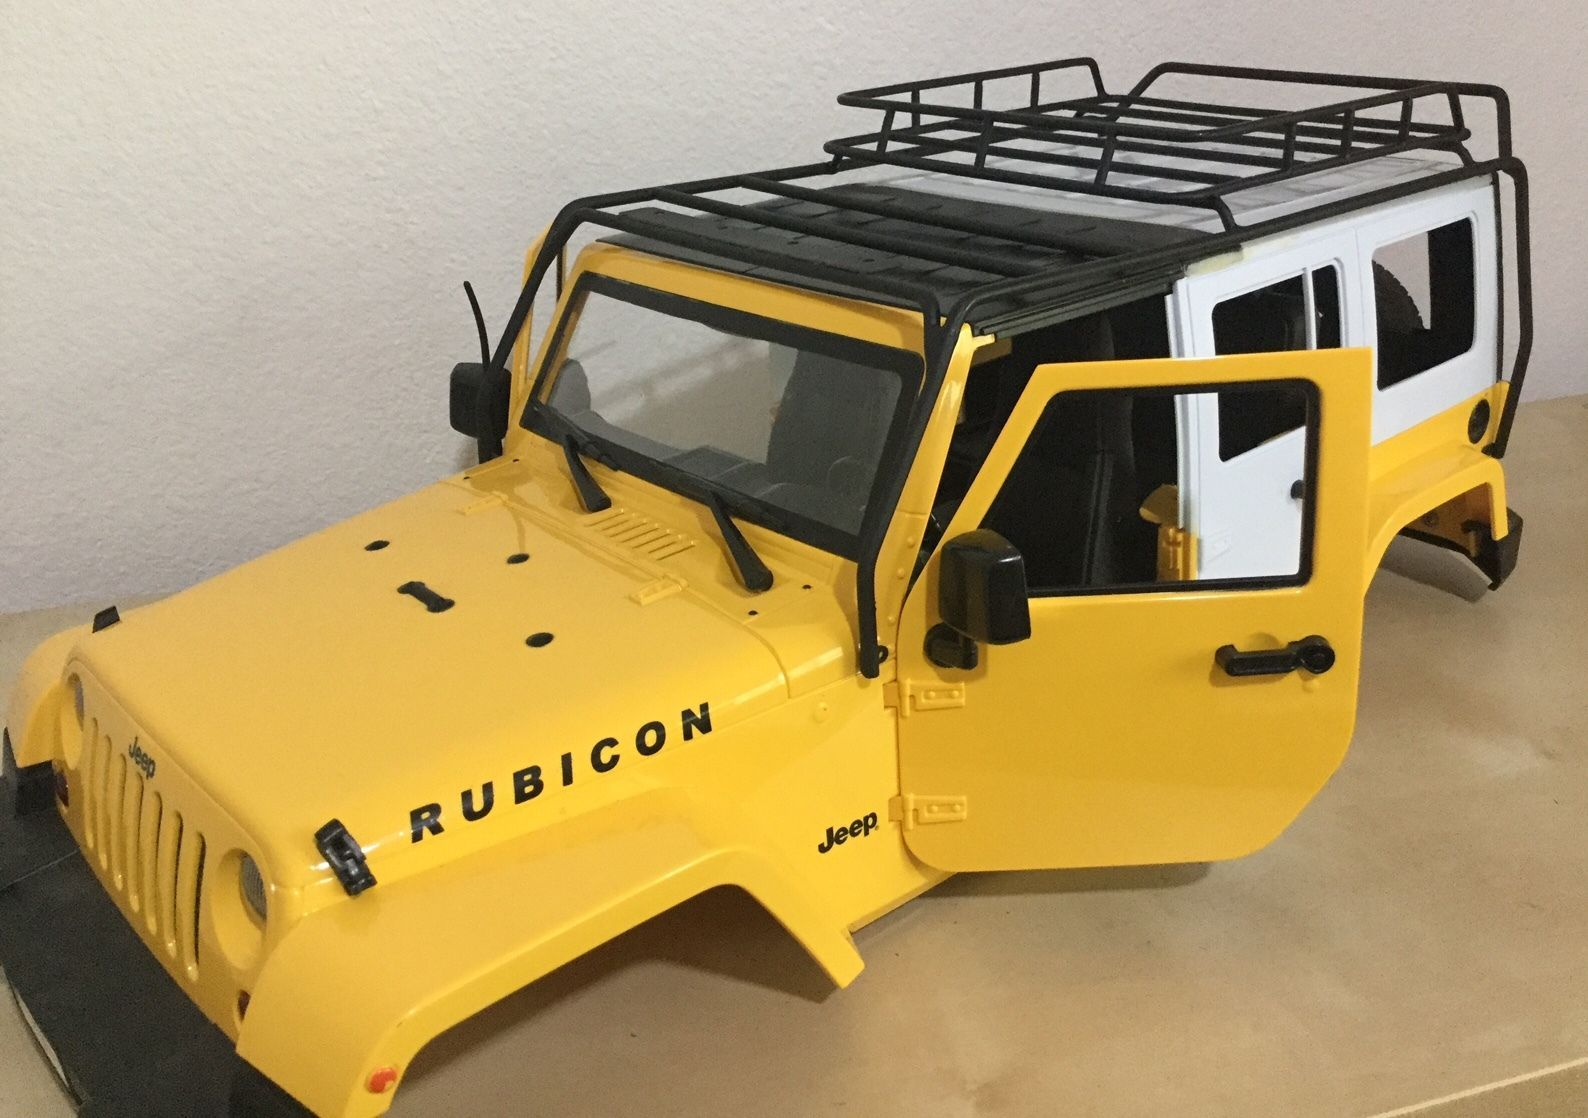 1 10 Scale Jeep Wrangler Rubicon 5 Doors 313 Mm Hand Made W Metal Roof Rack Roof Rack Jeep Wrangler Rubicon Jeep Wrangler